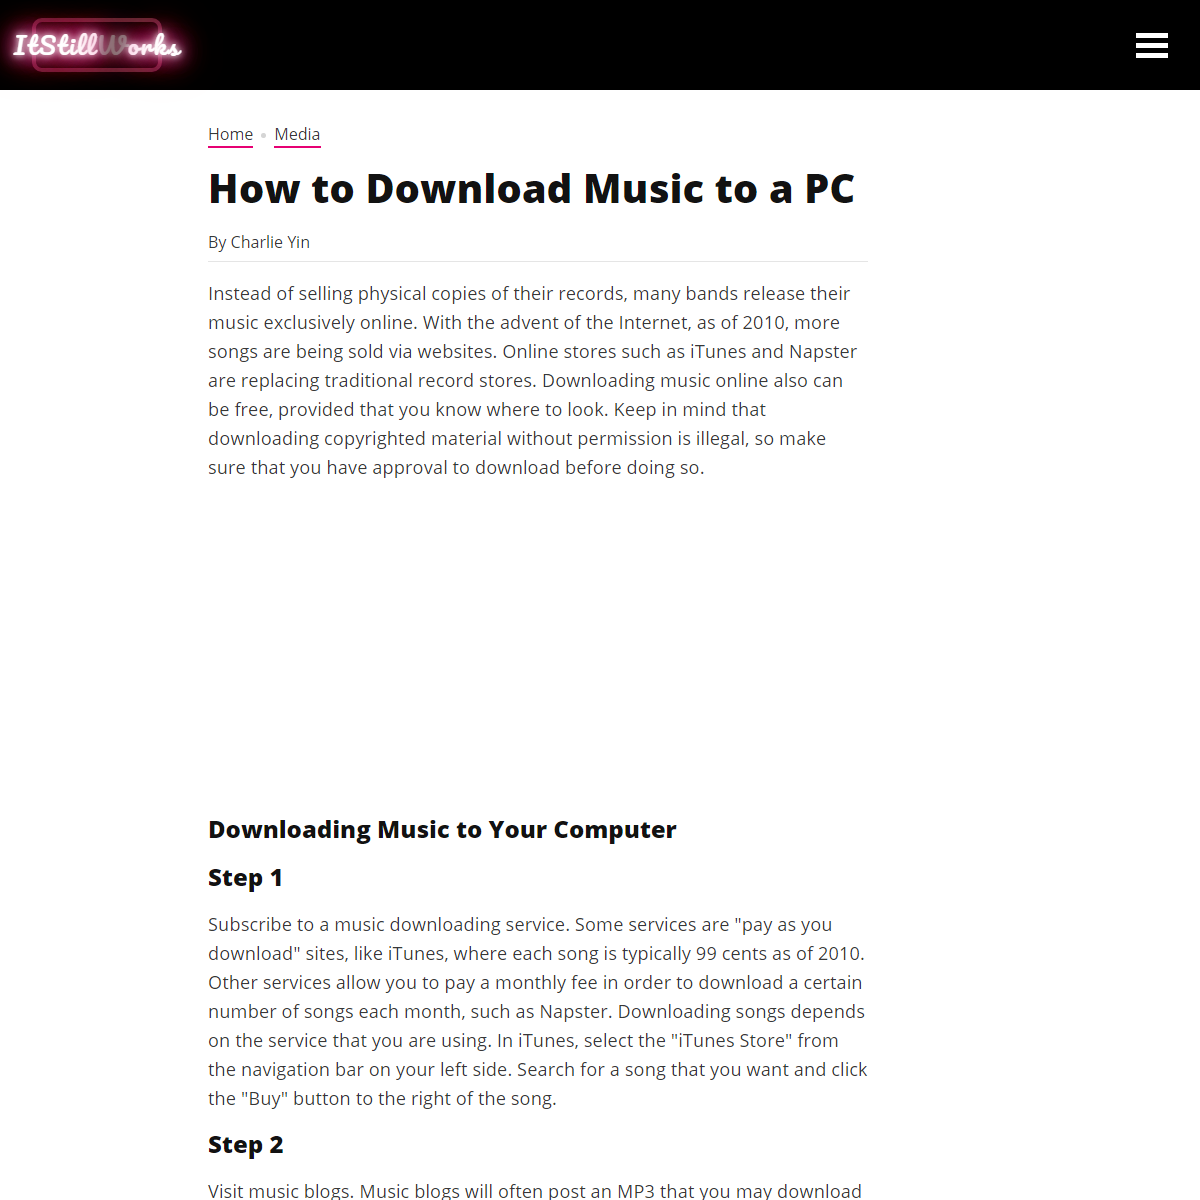 How to Download Music to a PC